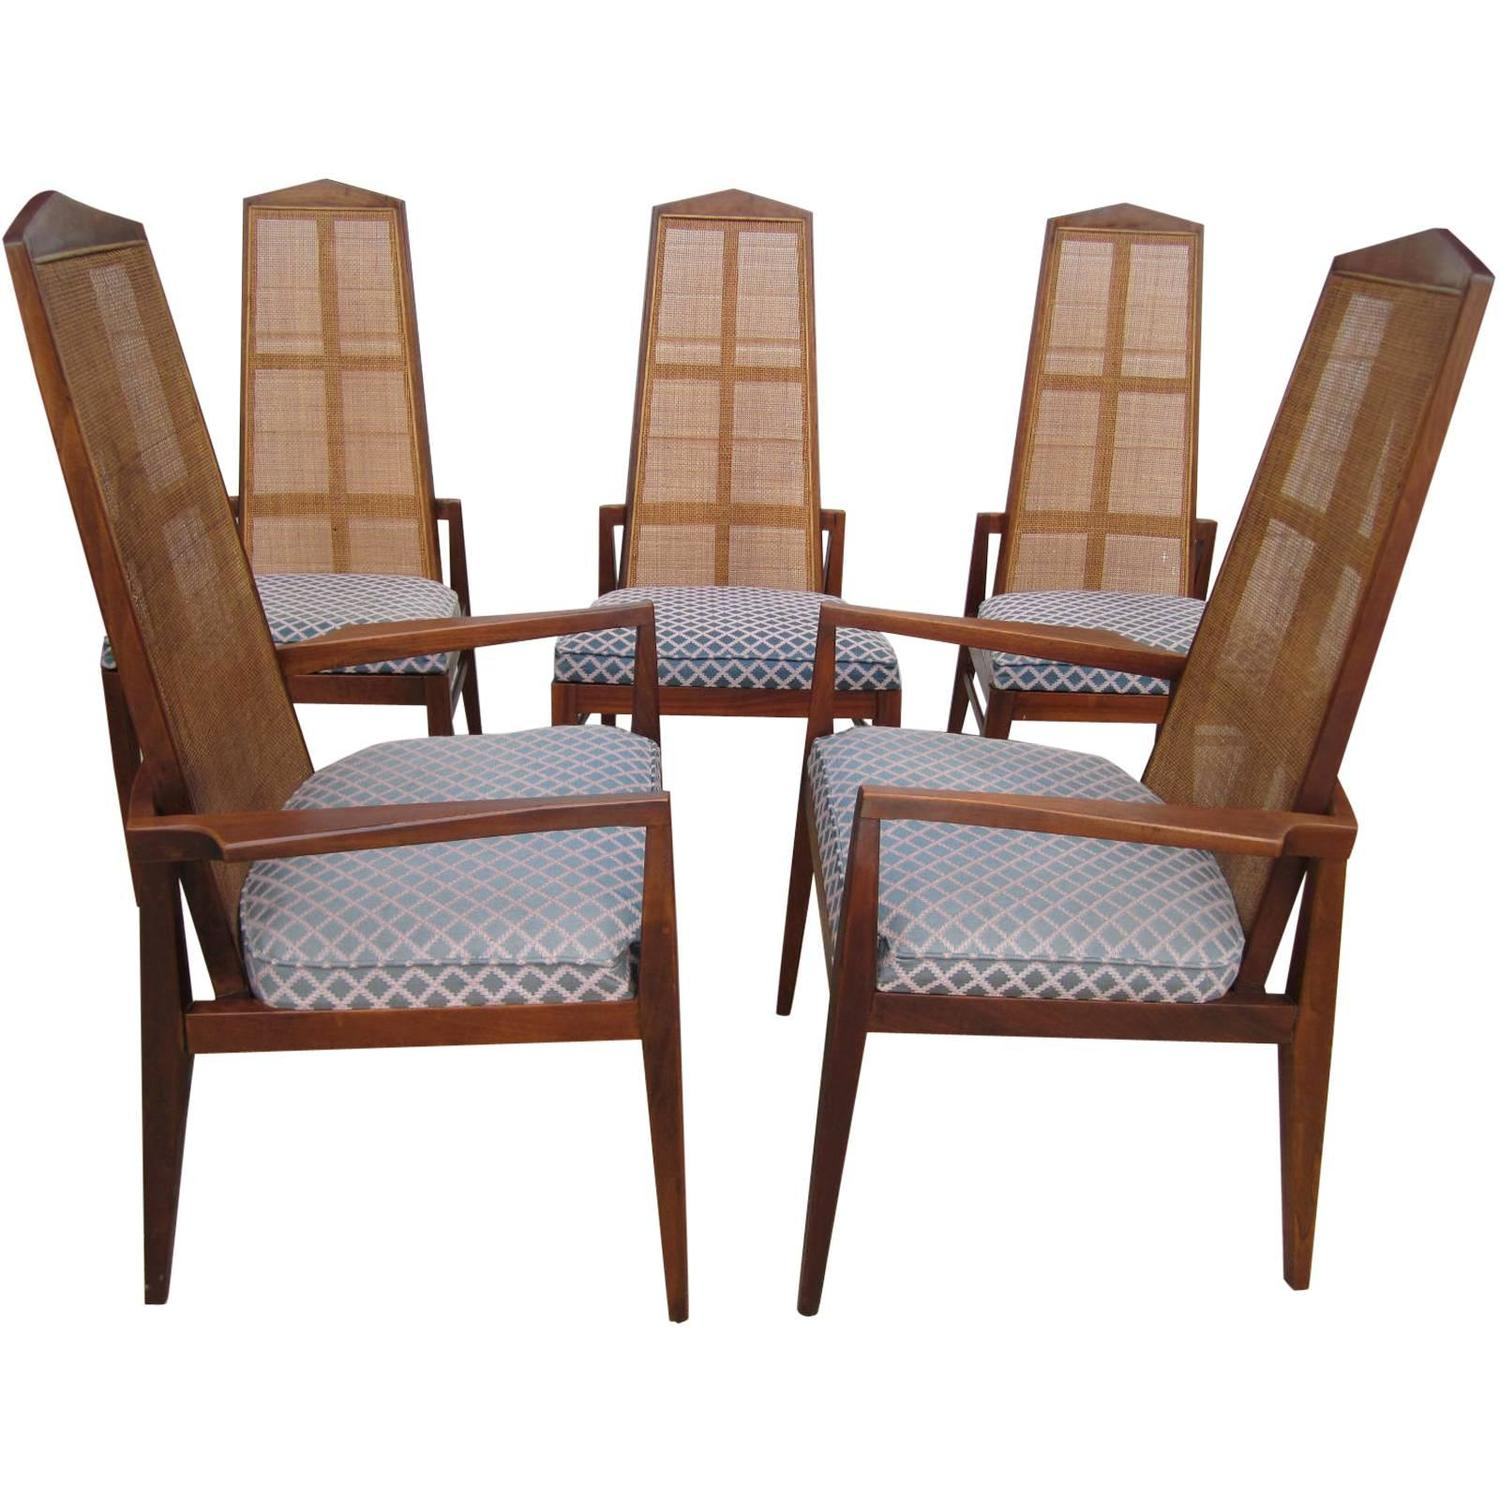 5 Walnut Foster And McDavid Cane Back Dining Chairs, Mid Century Modern For  Sale At 1stdibs